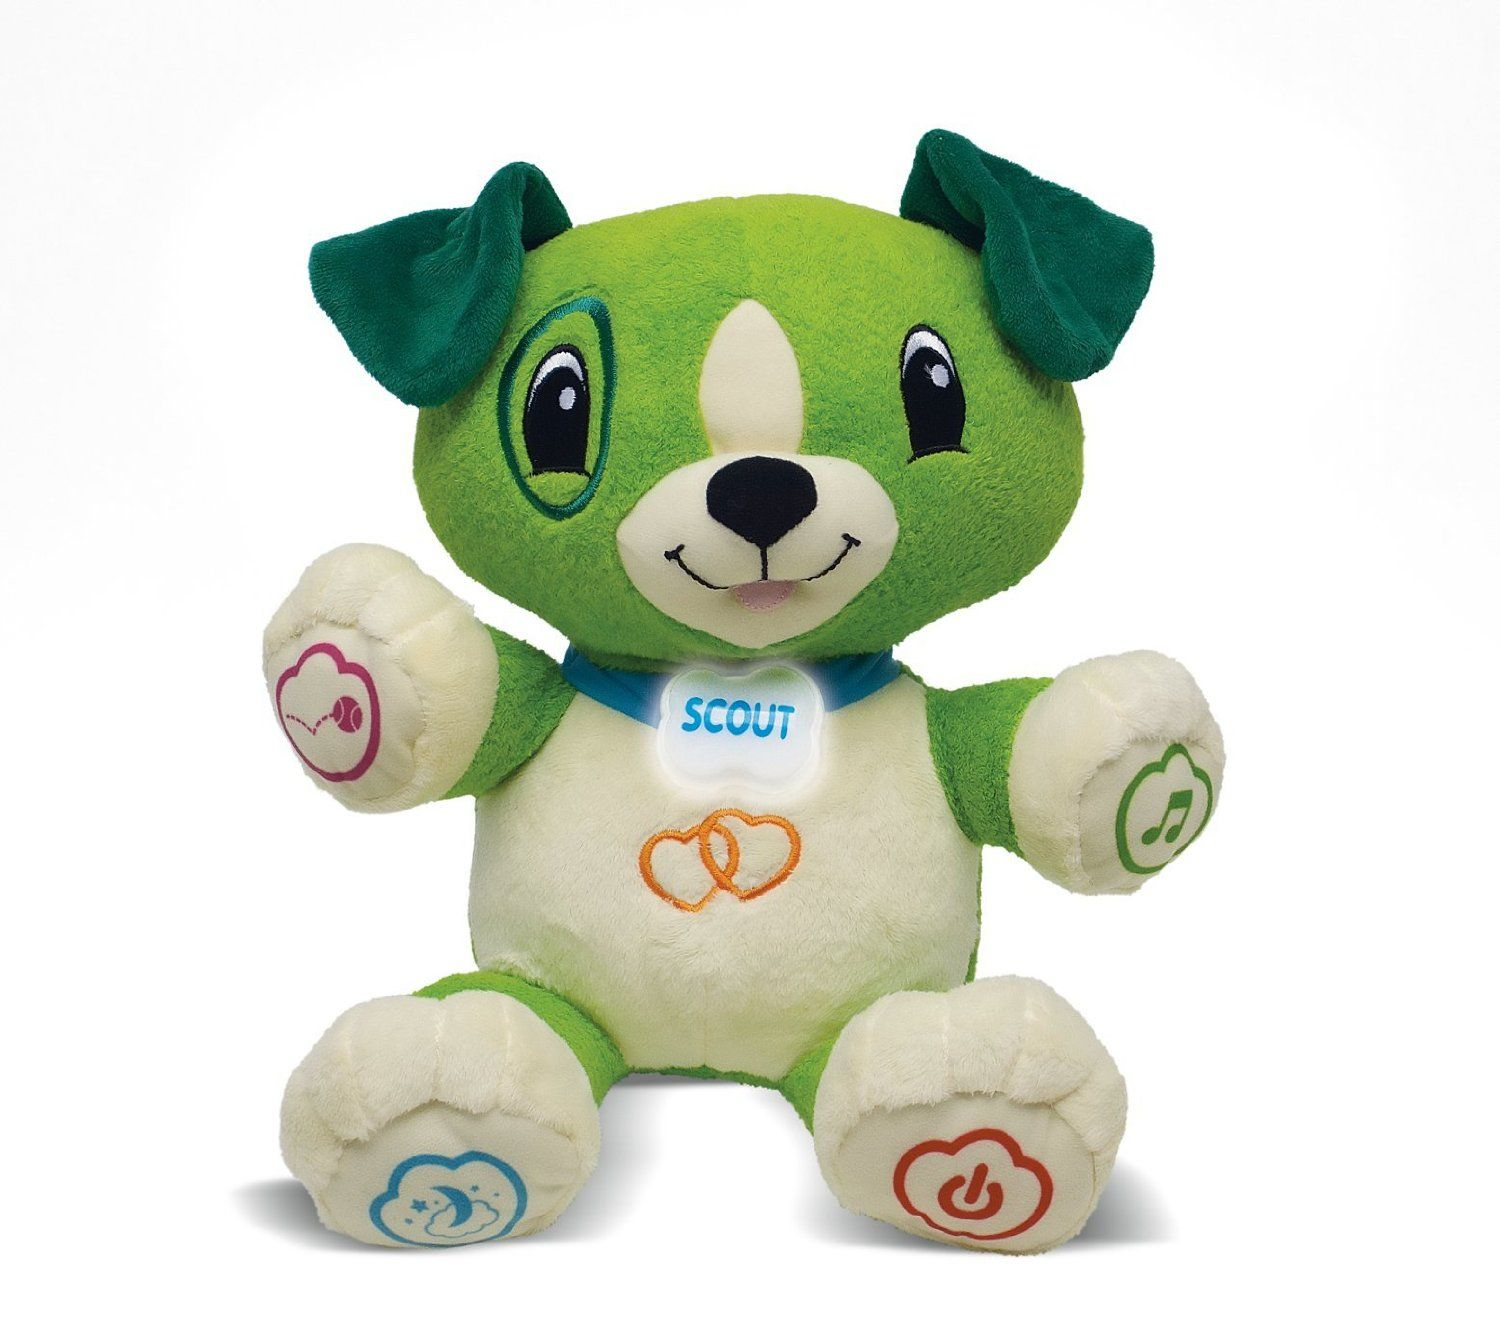 Looking for a great gift idea? You can get this highly-rated LeapFrog My Pal Scout for only $14.99 (Reg. $24.99)!   Click the link below to get all of the details ► http://www.thecouponingcouple.com/leapfrog-my-pal-scout-only-14-99-reg-24-99/